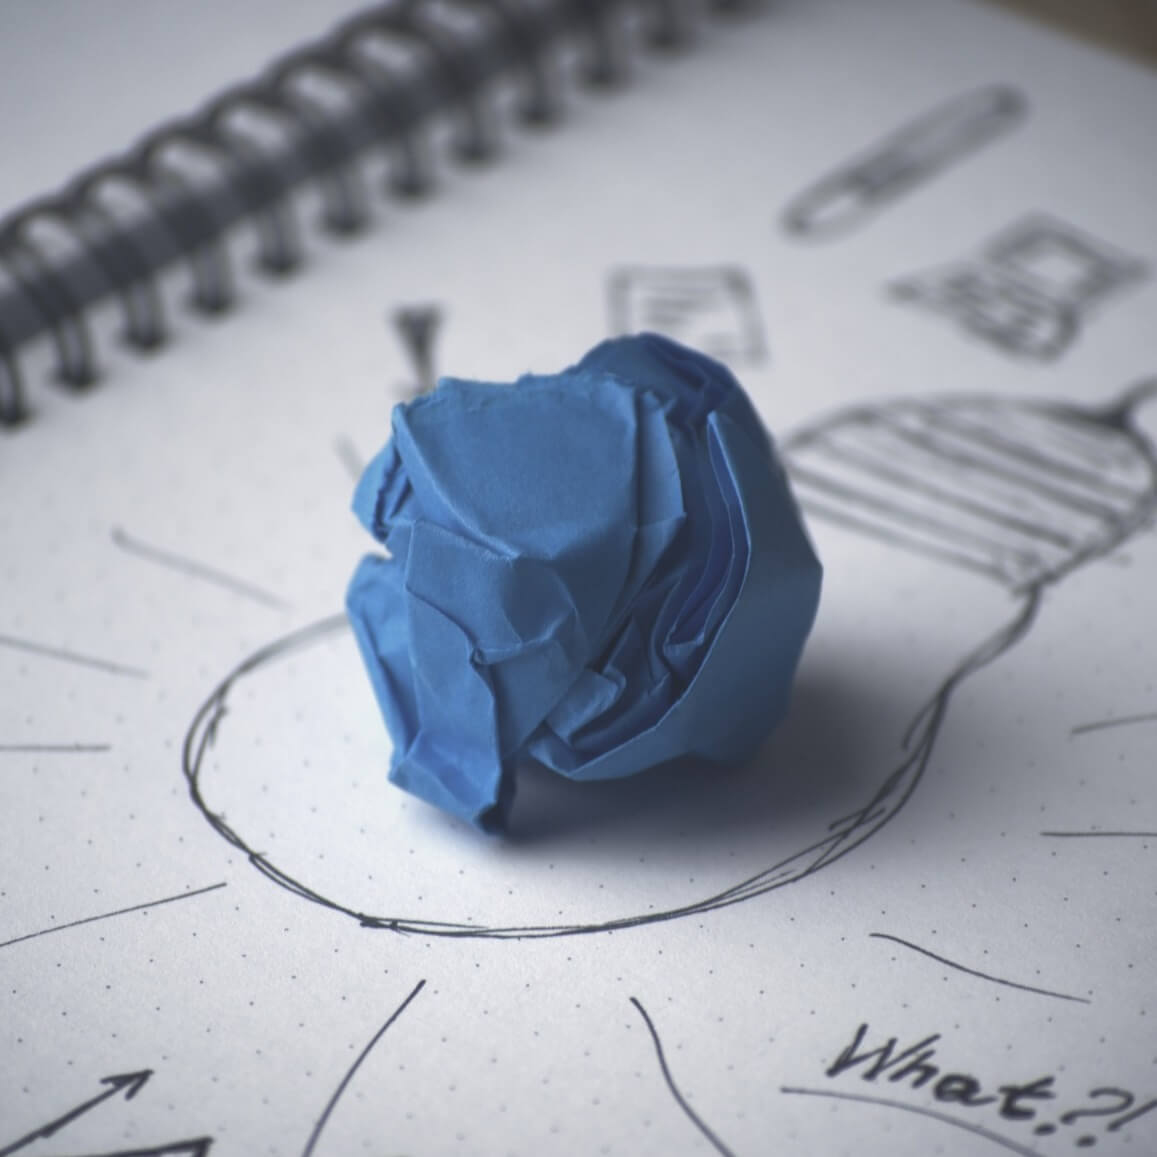 drawing of a lightbulb representing an idea and creativity